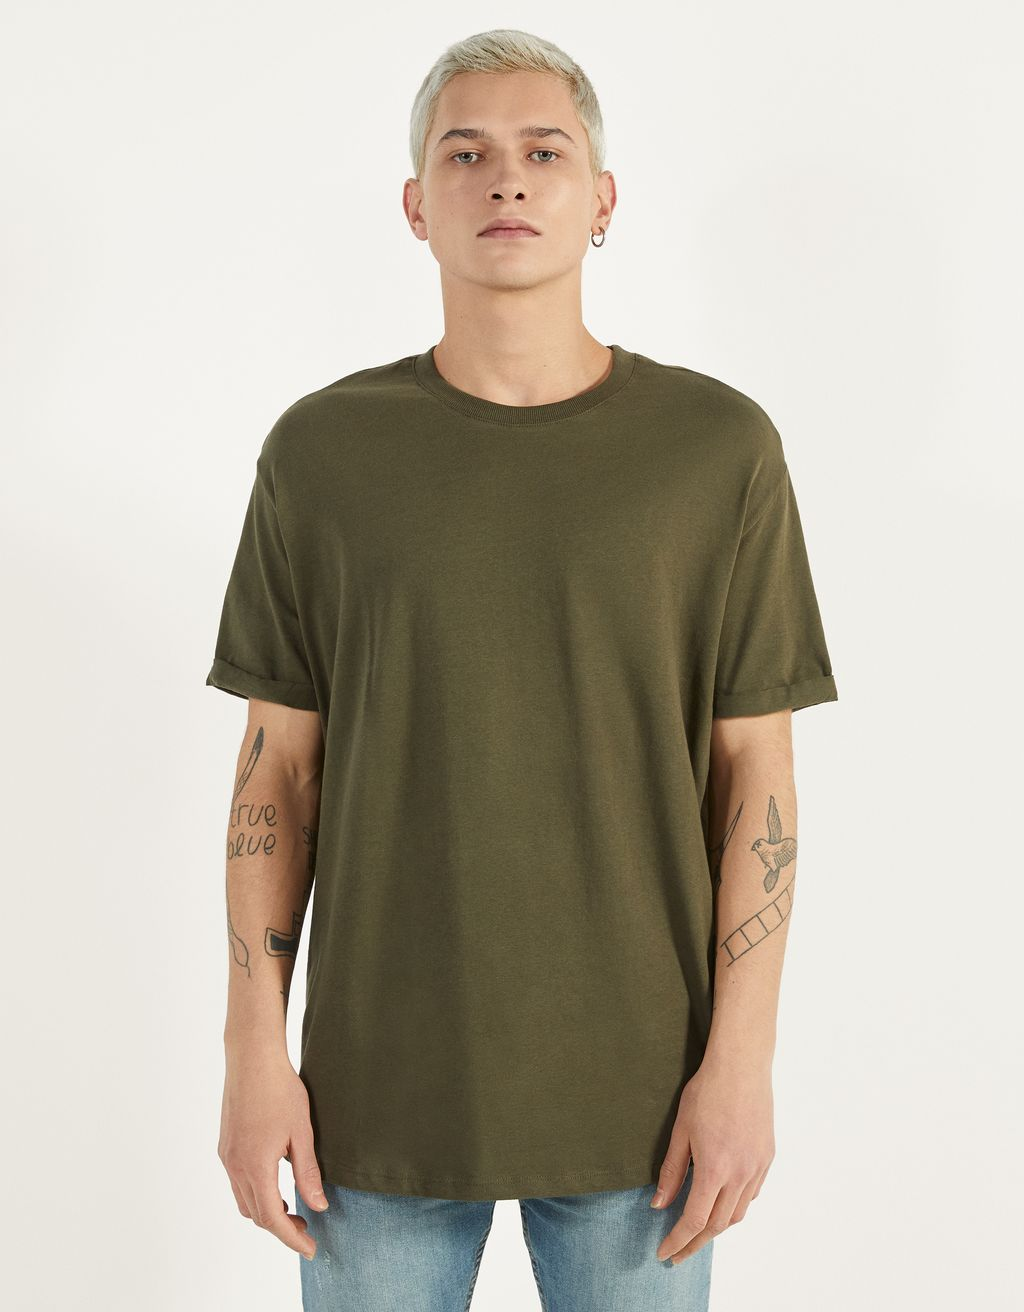 Long short sleeve T-shirt